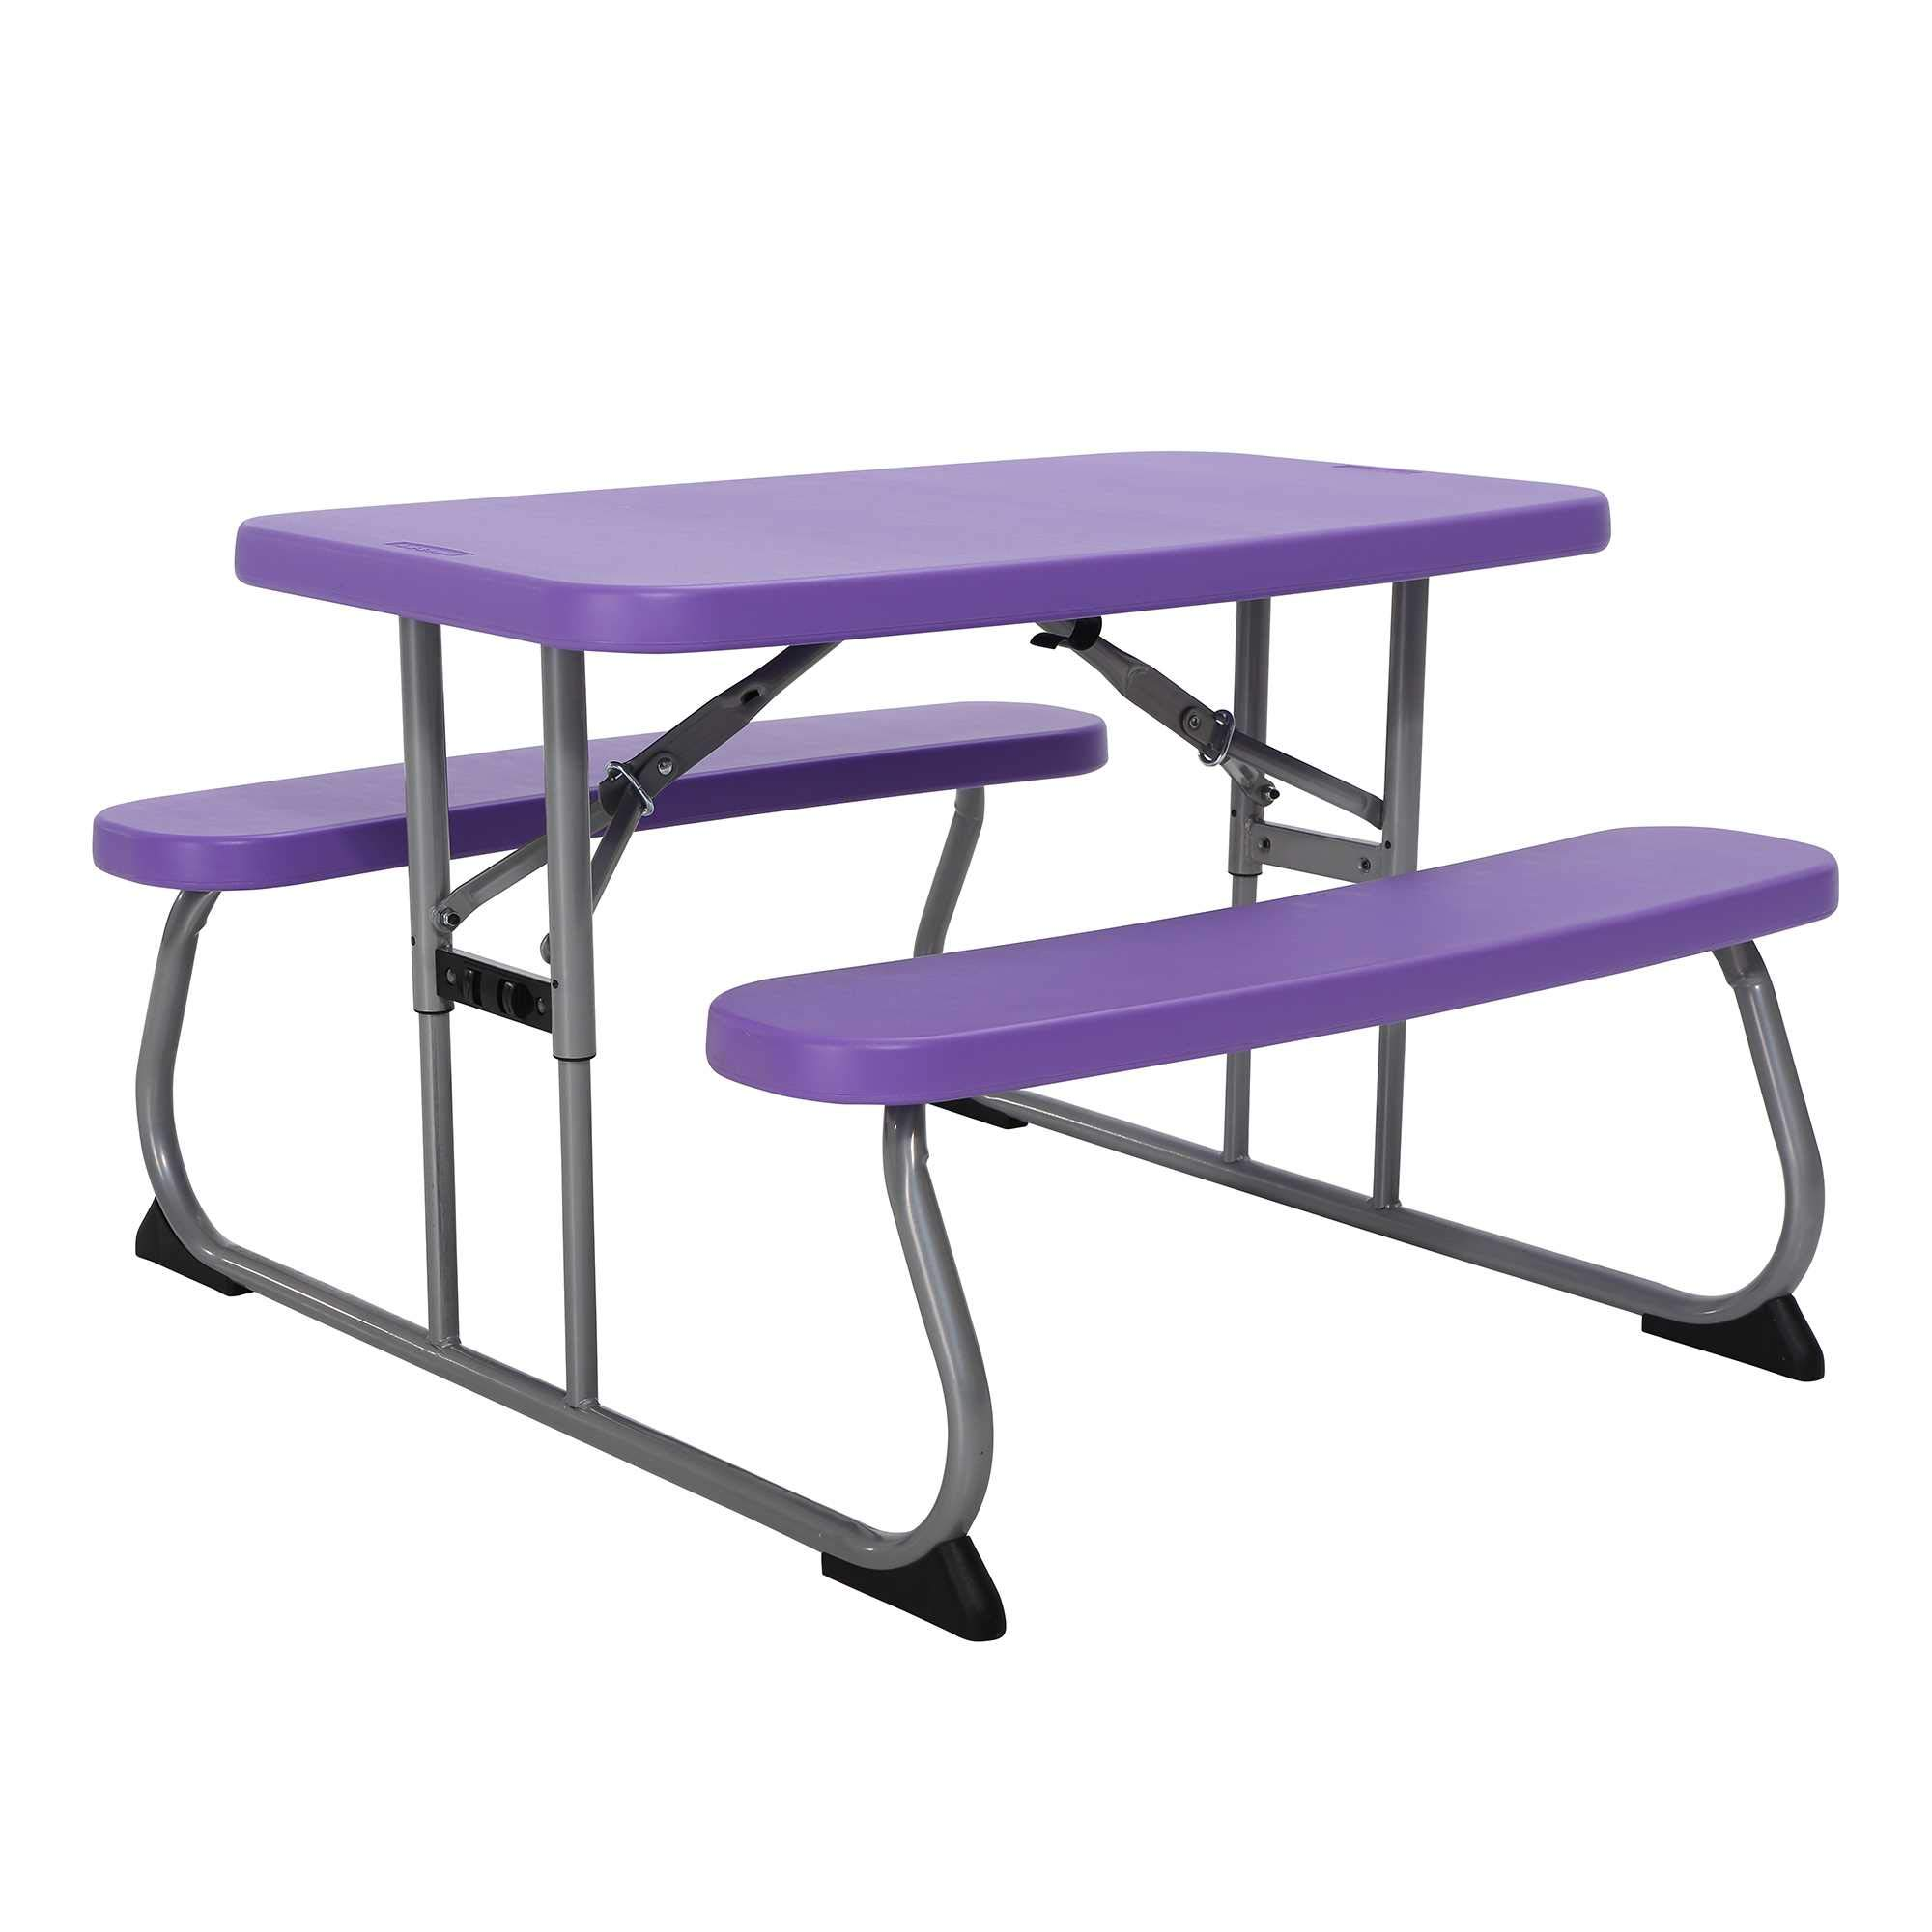 Wal Childrens Picnic Table (Purple)